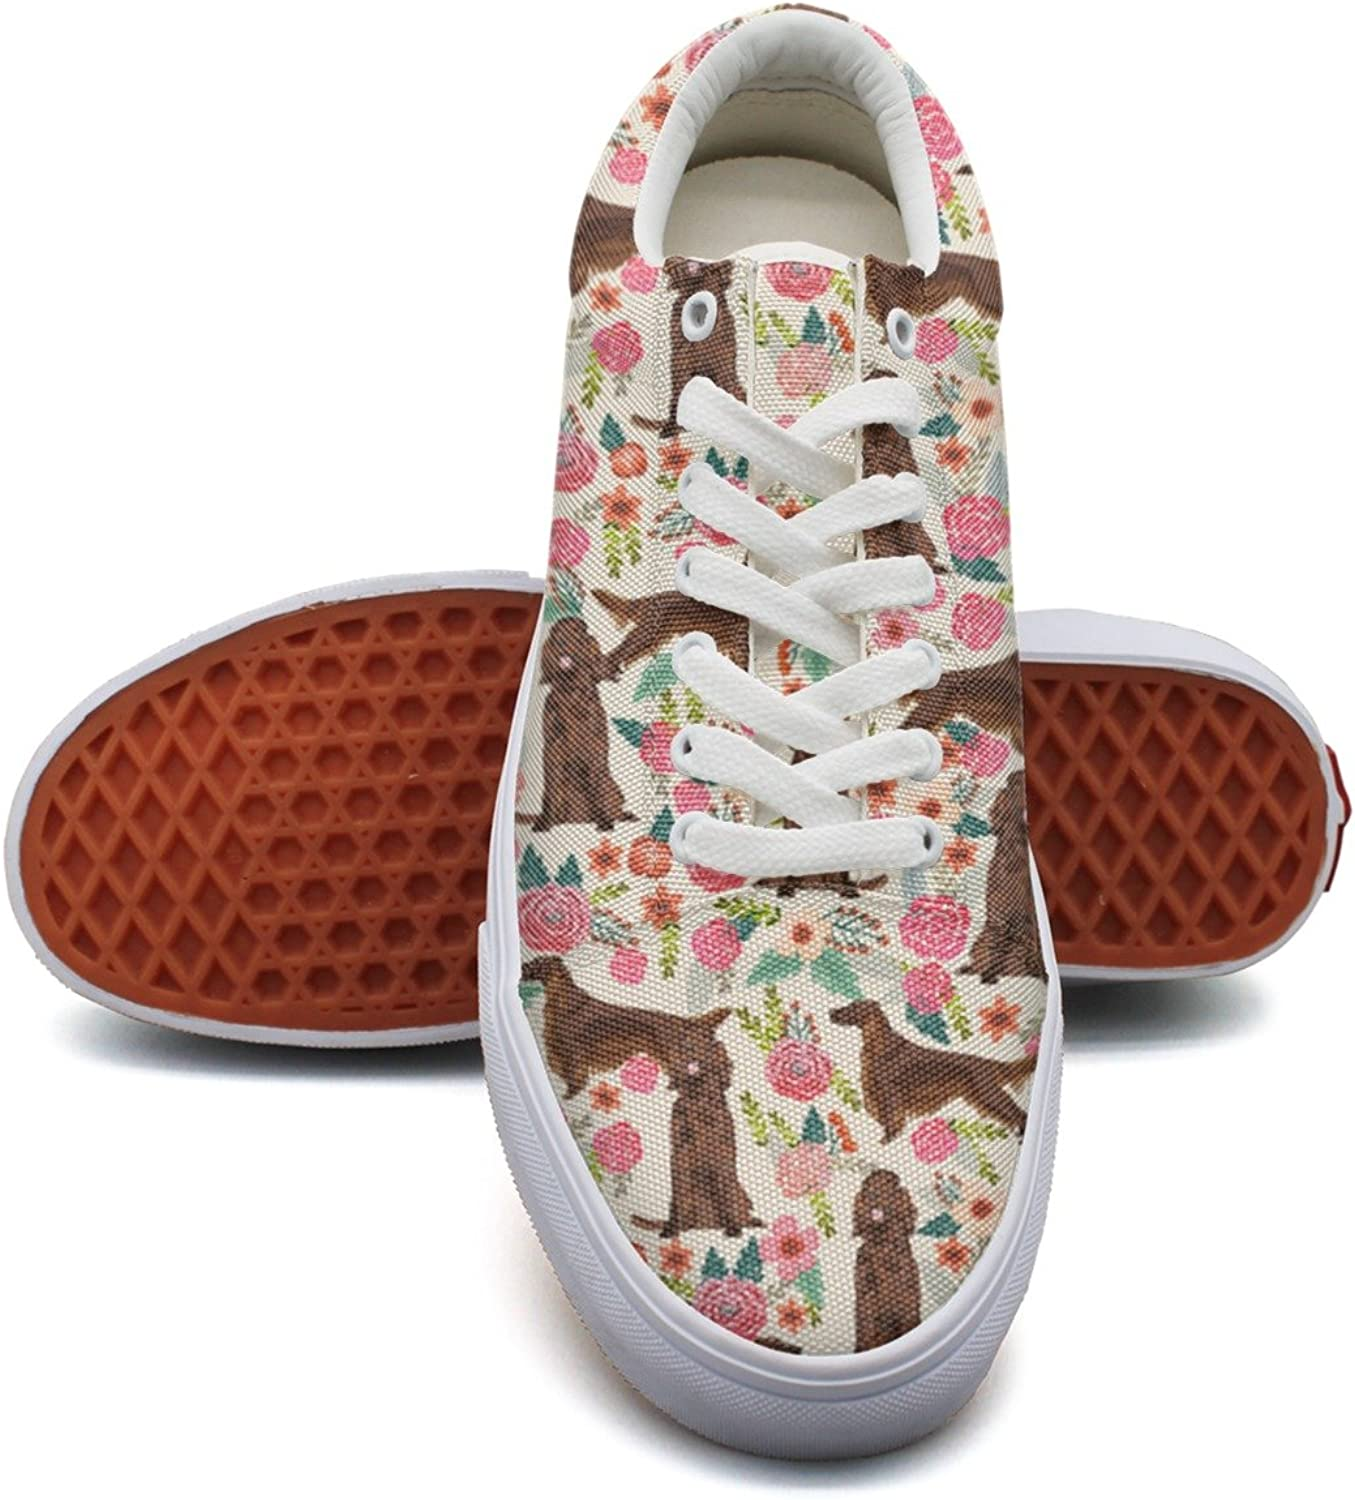 Feenfling Irish Setter Dog Floral Flowers Womens Light Canvas Boat shoes Low Top Best Volleyball Sneakers for Women Girls